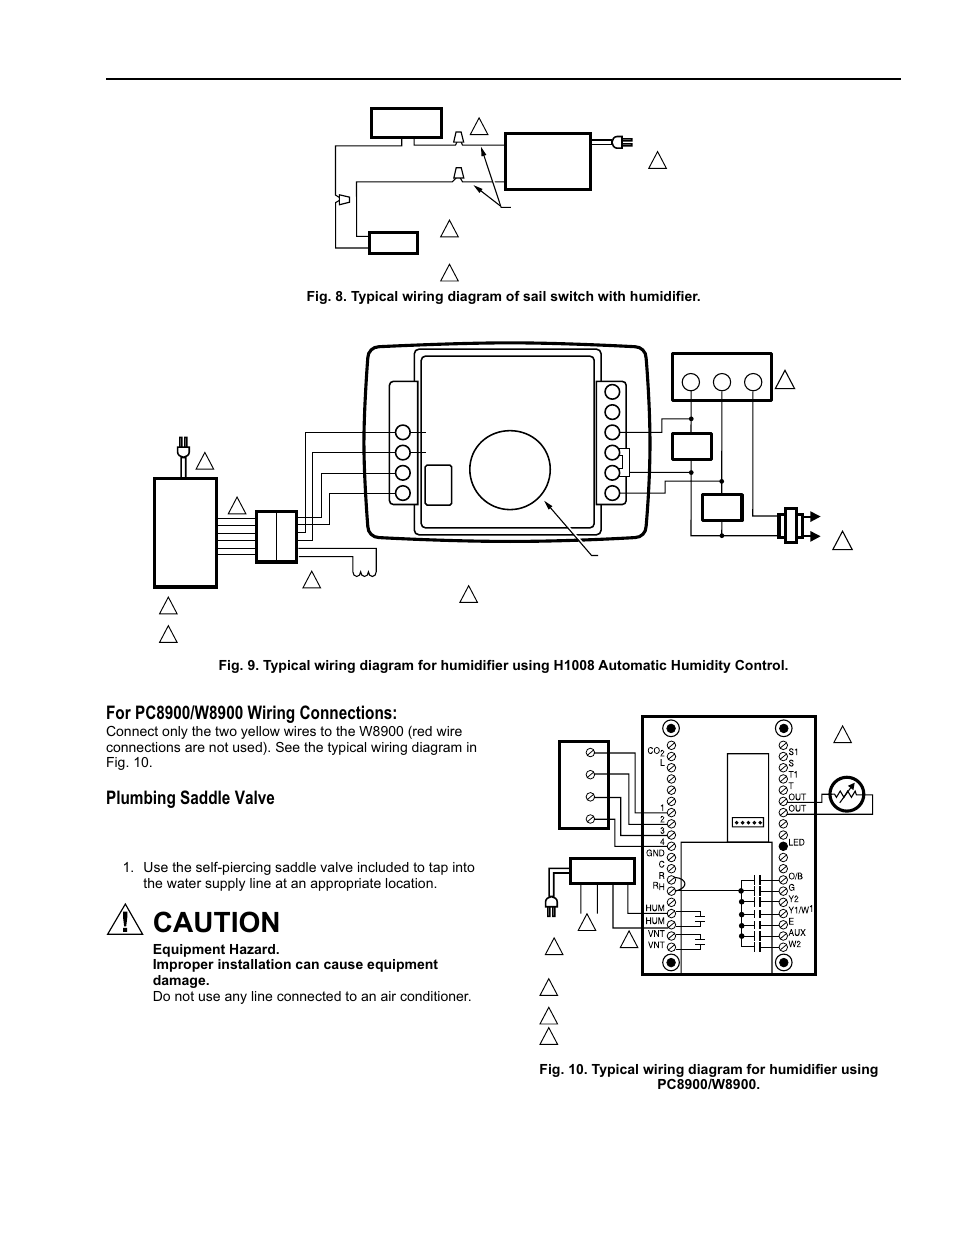 manual humidistat wiring diagram caution, plumbing saddle valve, he365a,b powered flow ... 1997 lexus es300 repair manual electrical wiring diagram pdf c2 b7